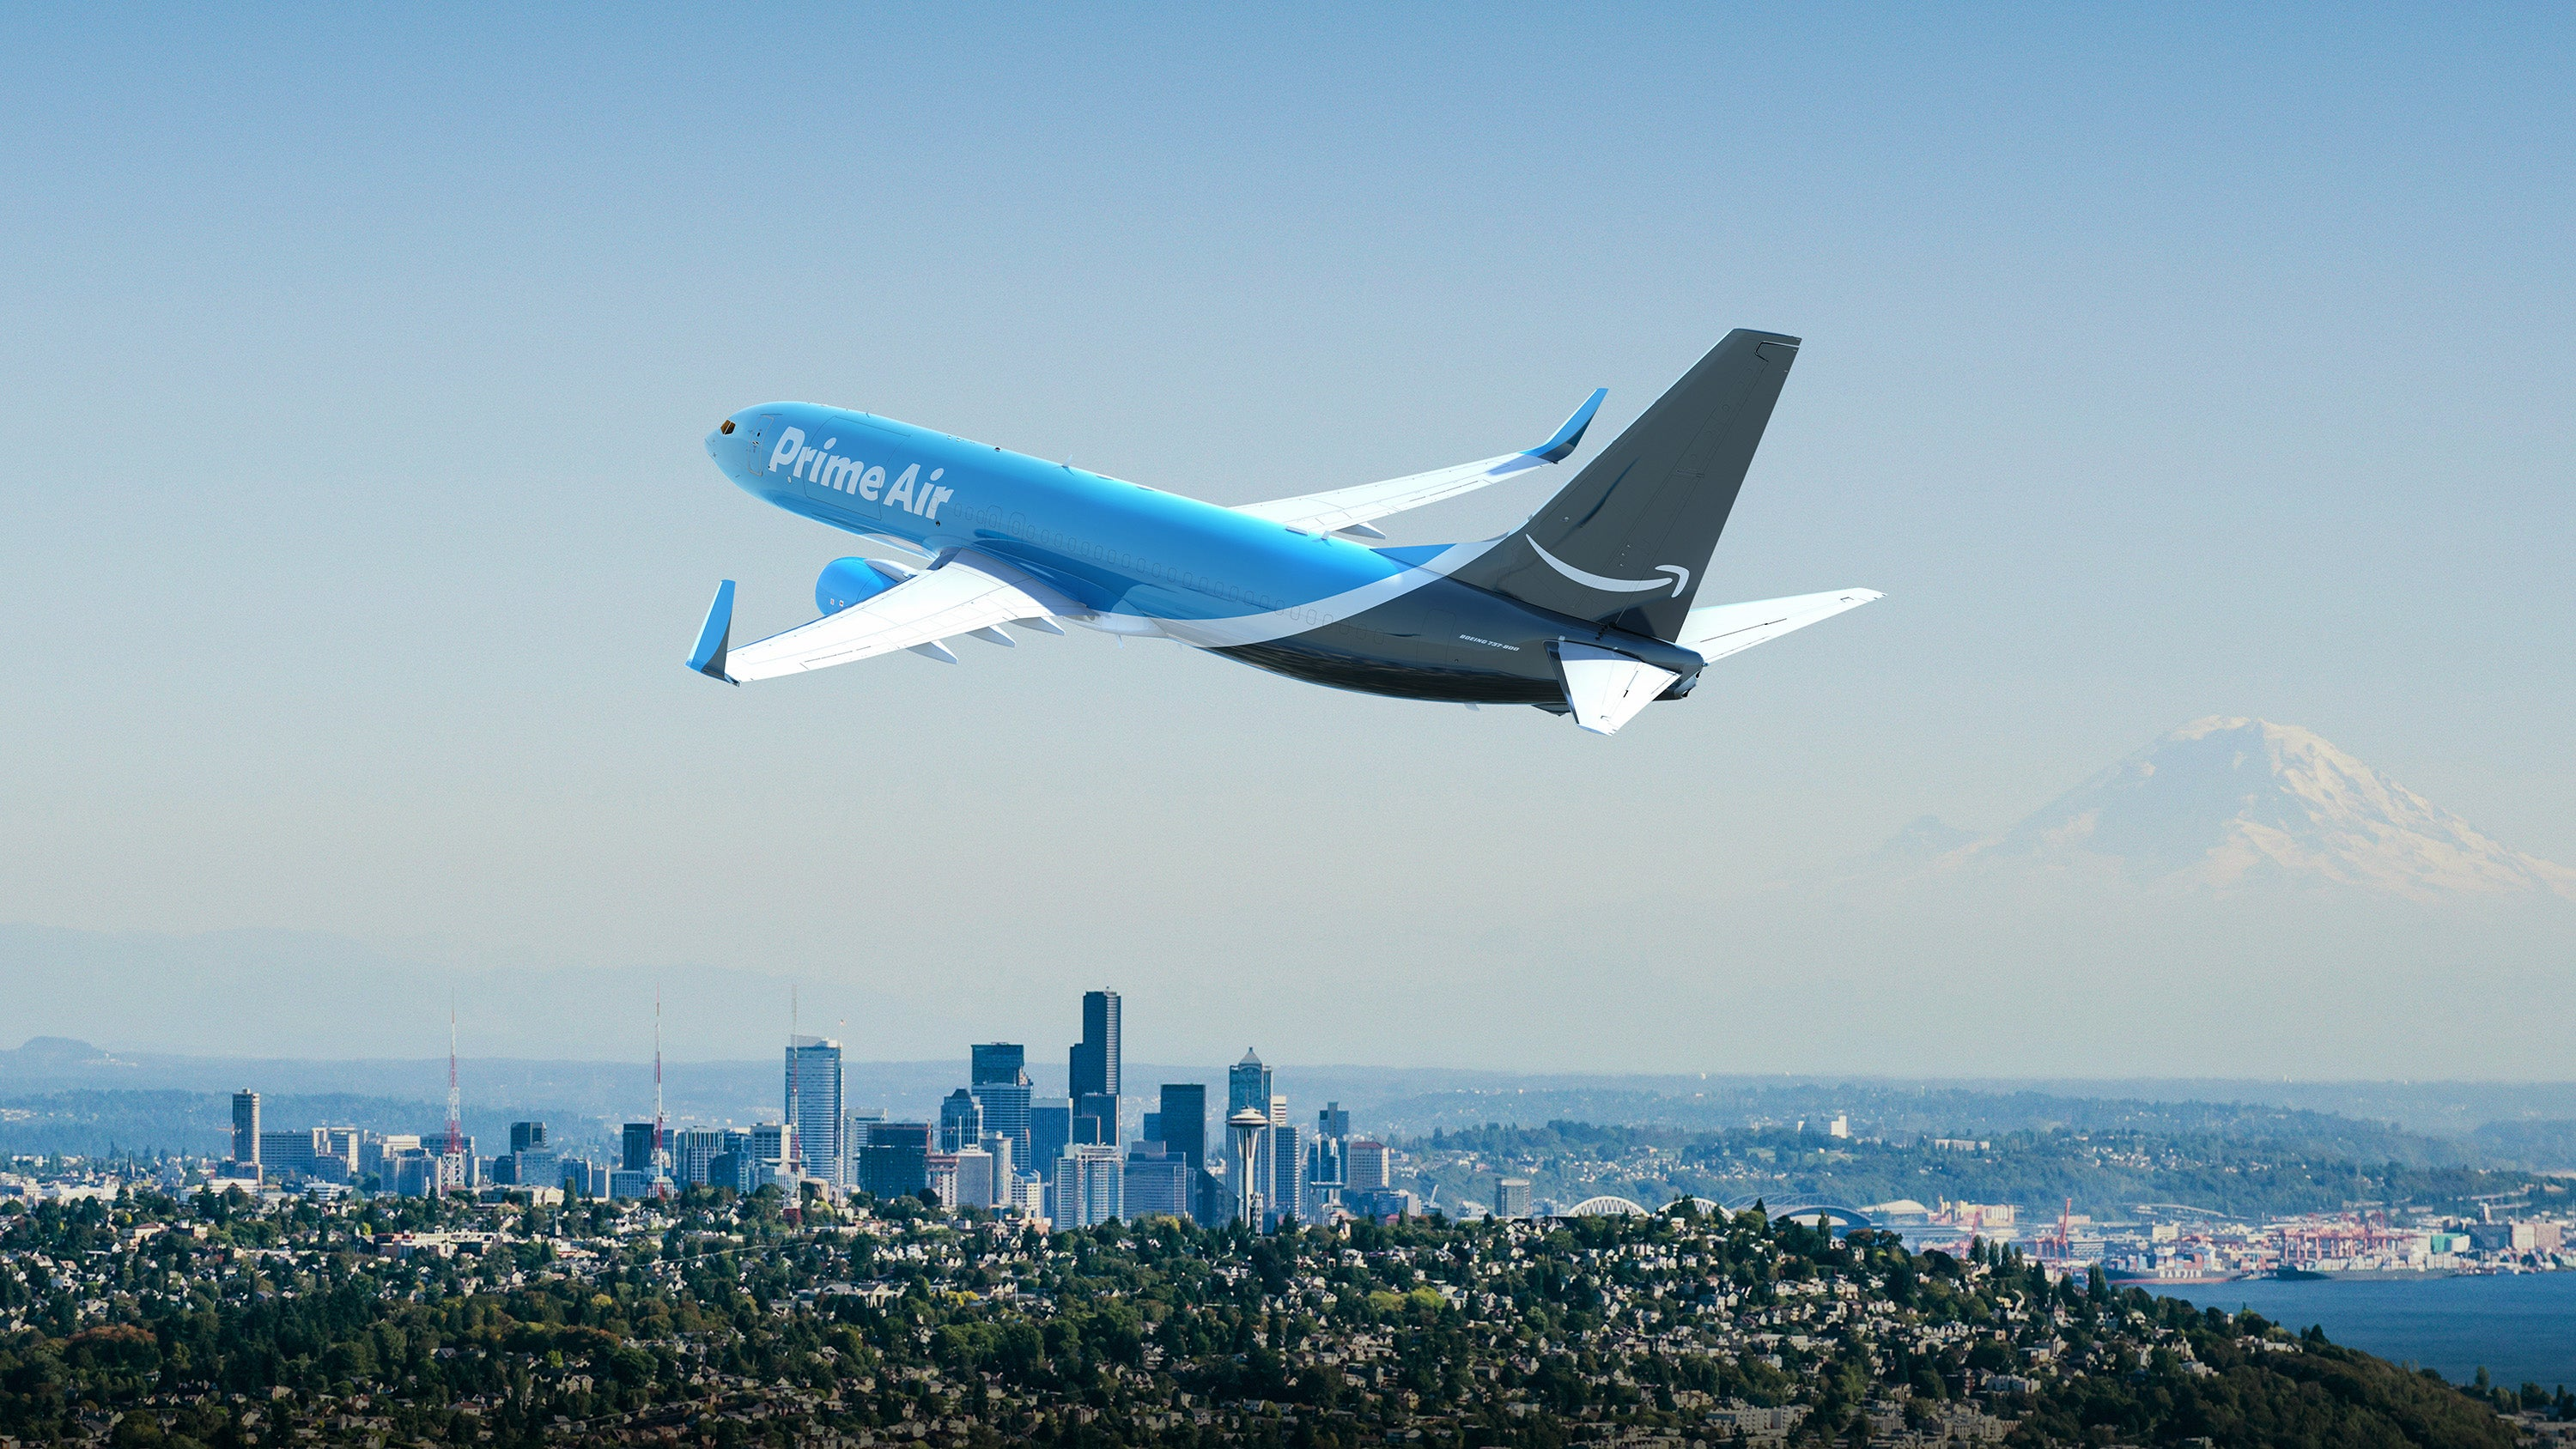 Amazon Prime Air plane flying above a cityscape